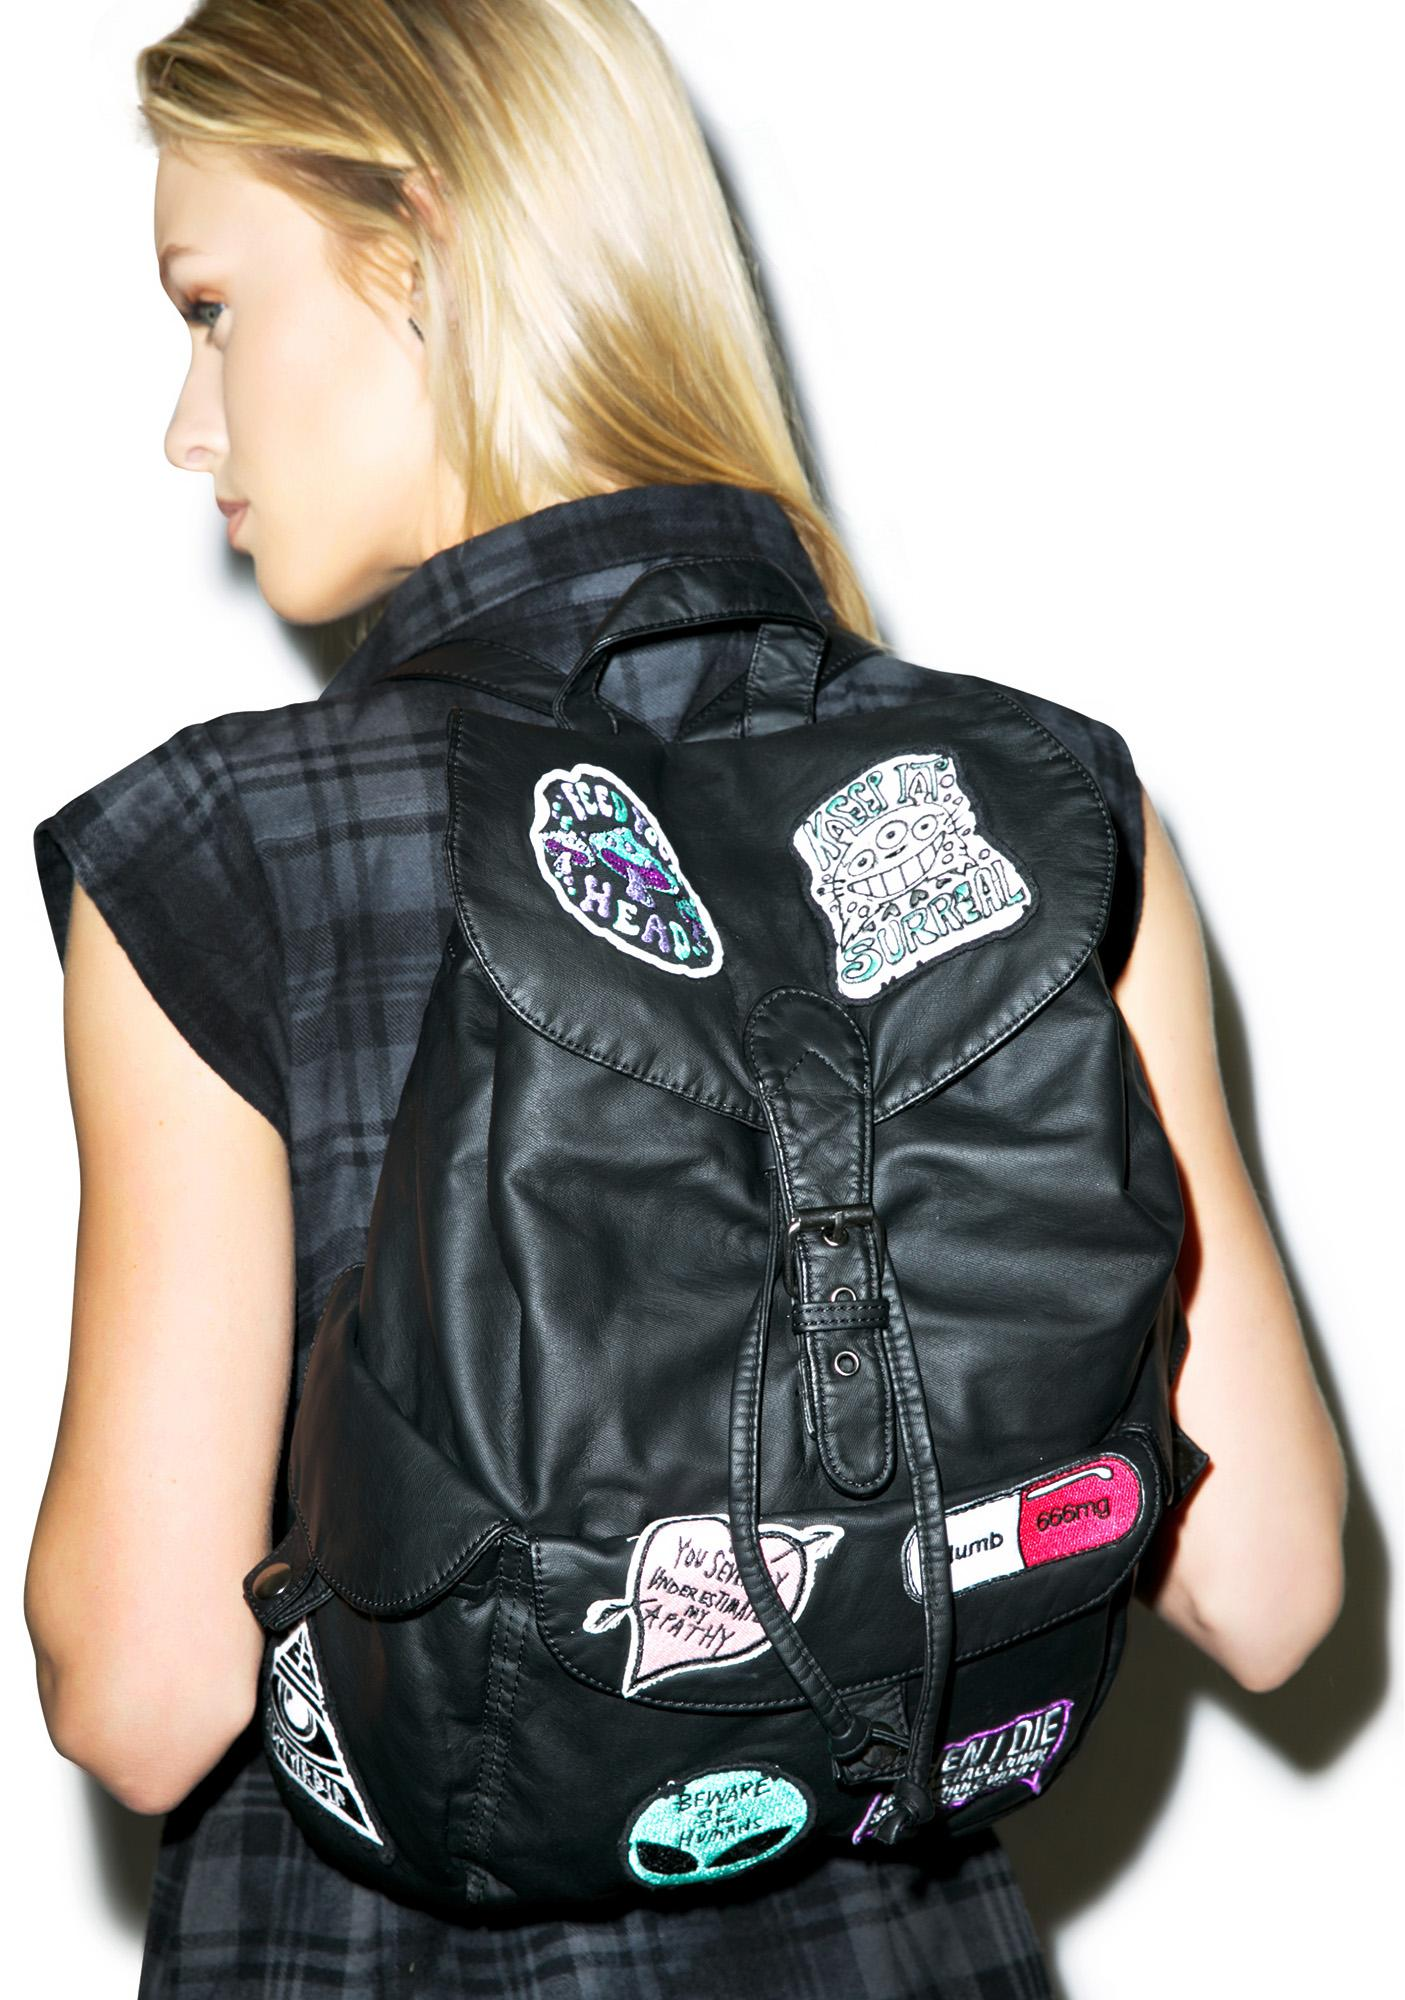 Disturbia Numb Me Backpack